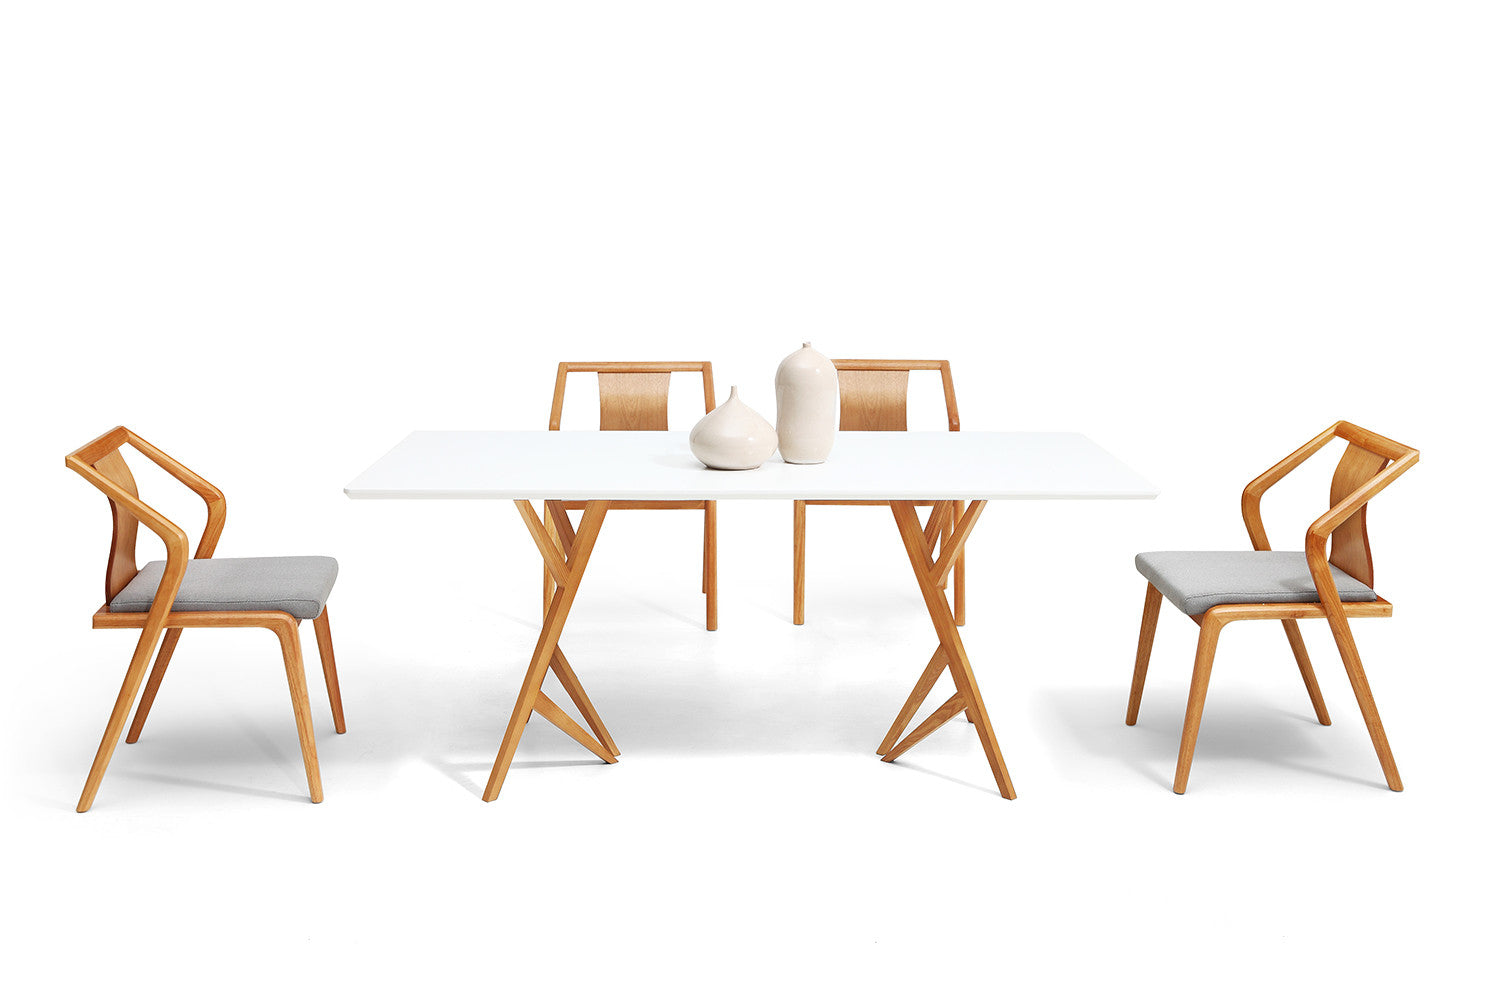 Table de salle manger design scandinave vispa dewarens for Table salle a manger solde